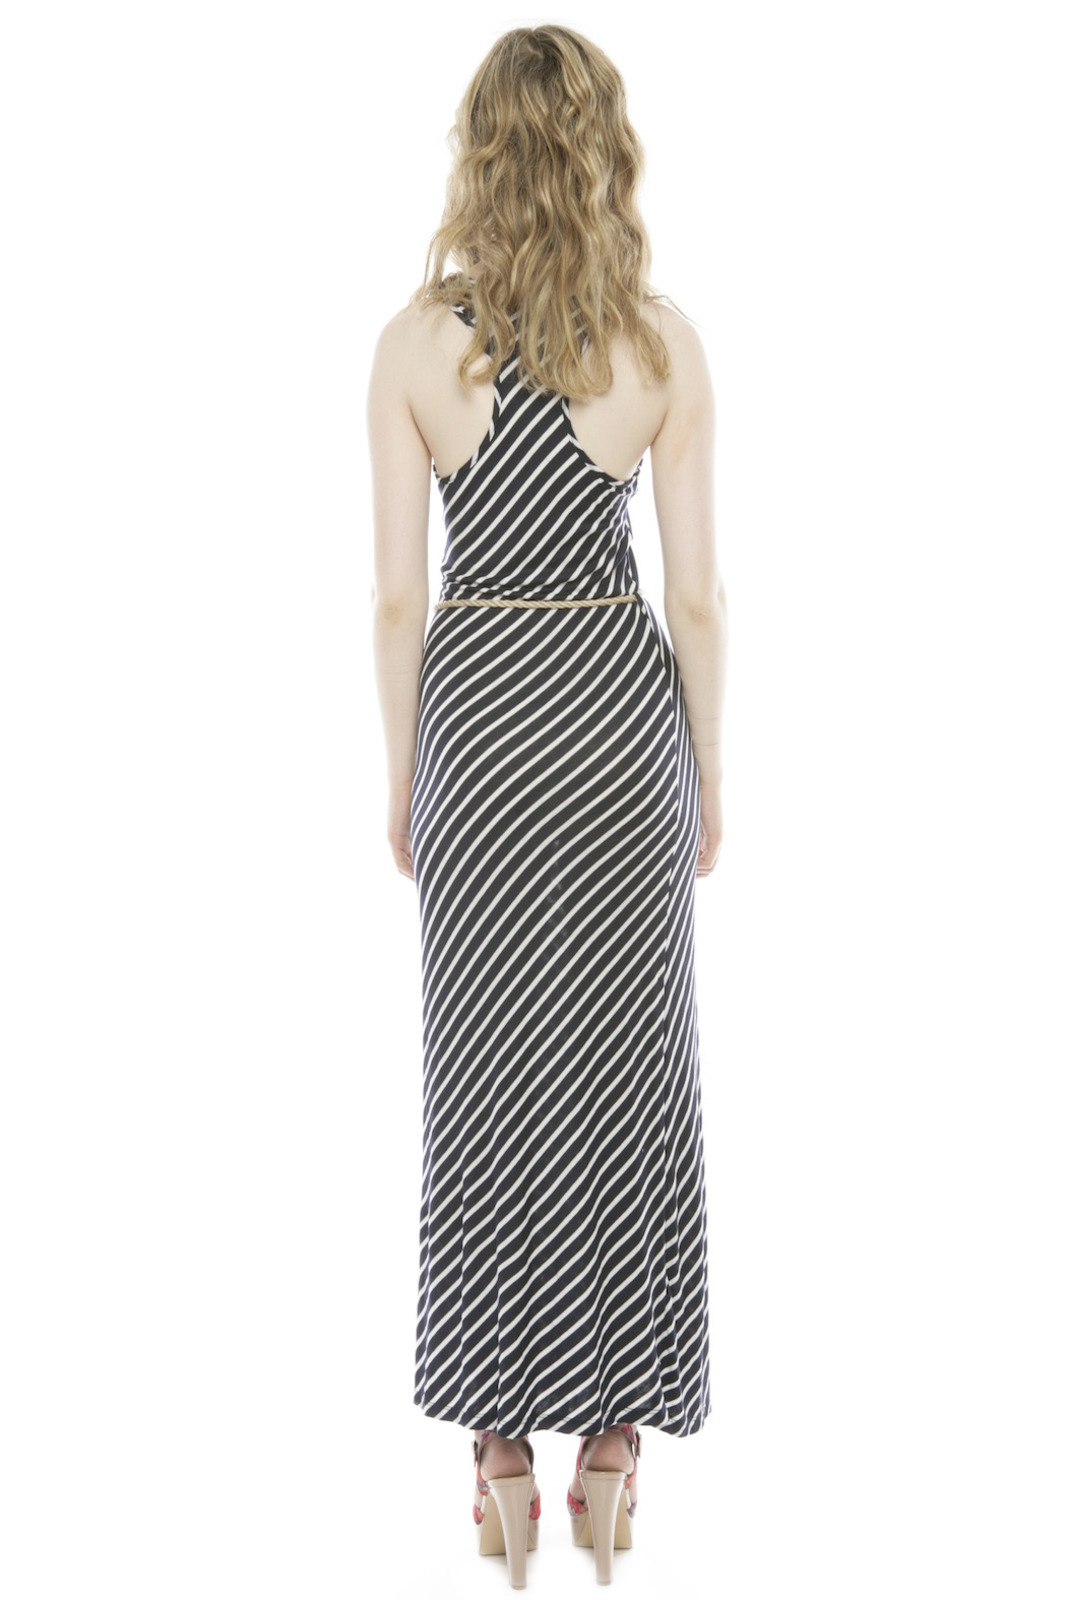 5th Culture Striped Maxi Dress - Side Cropped Image